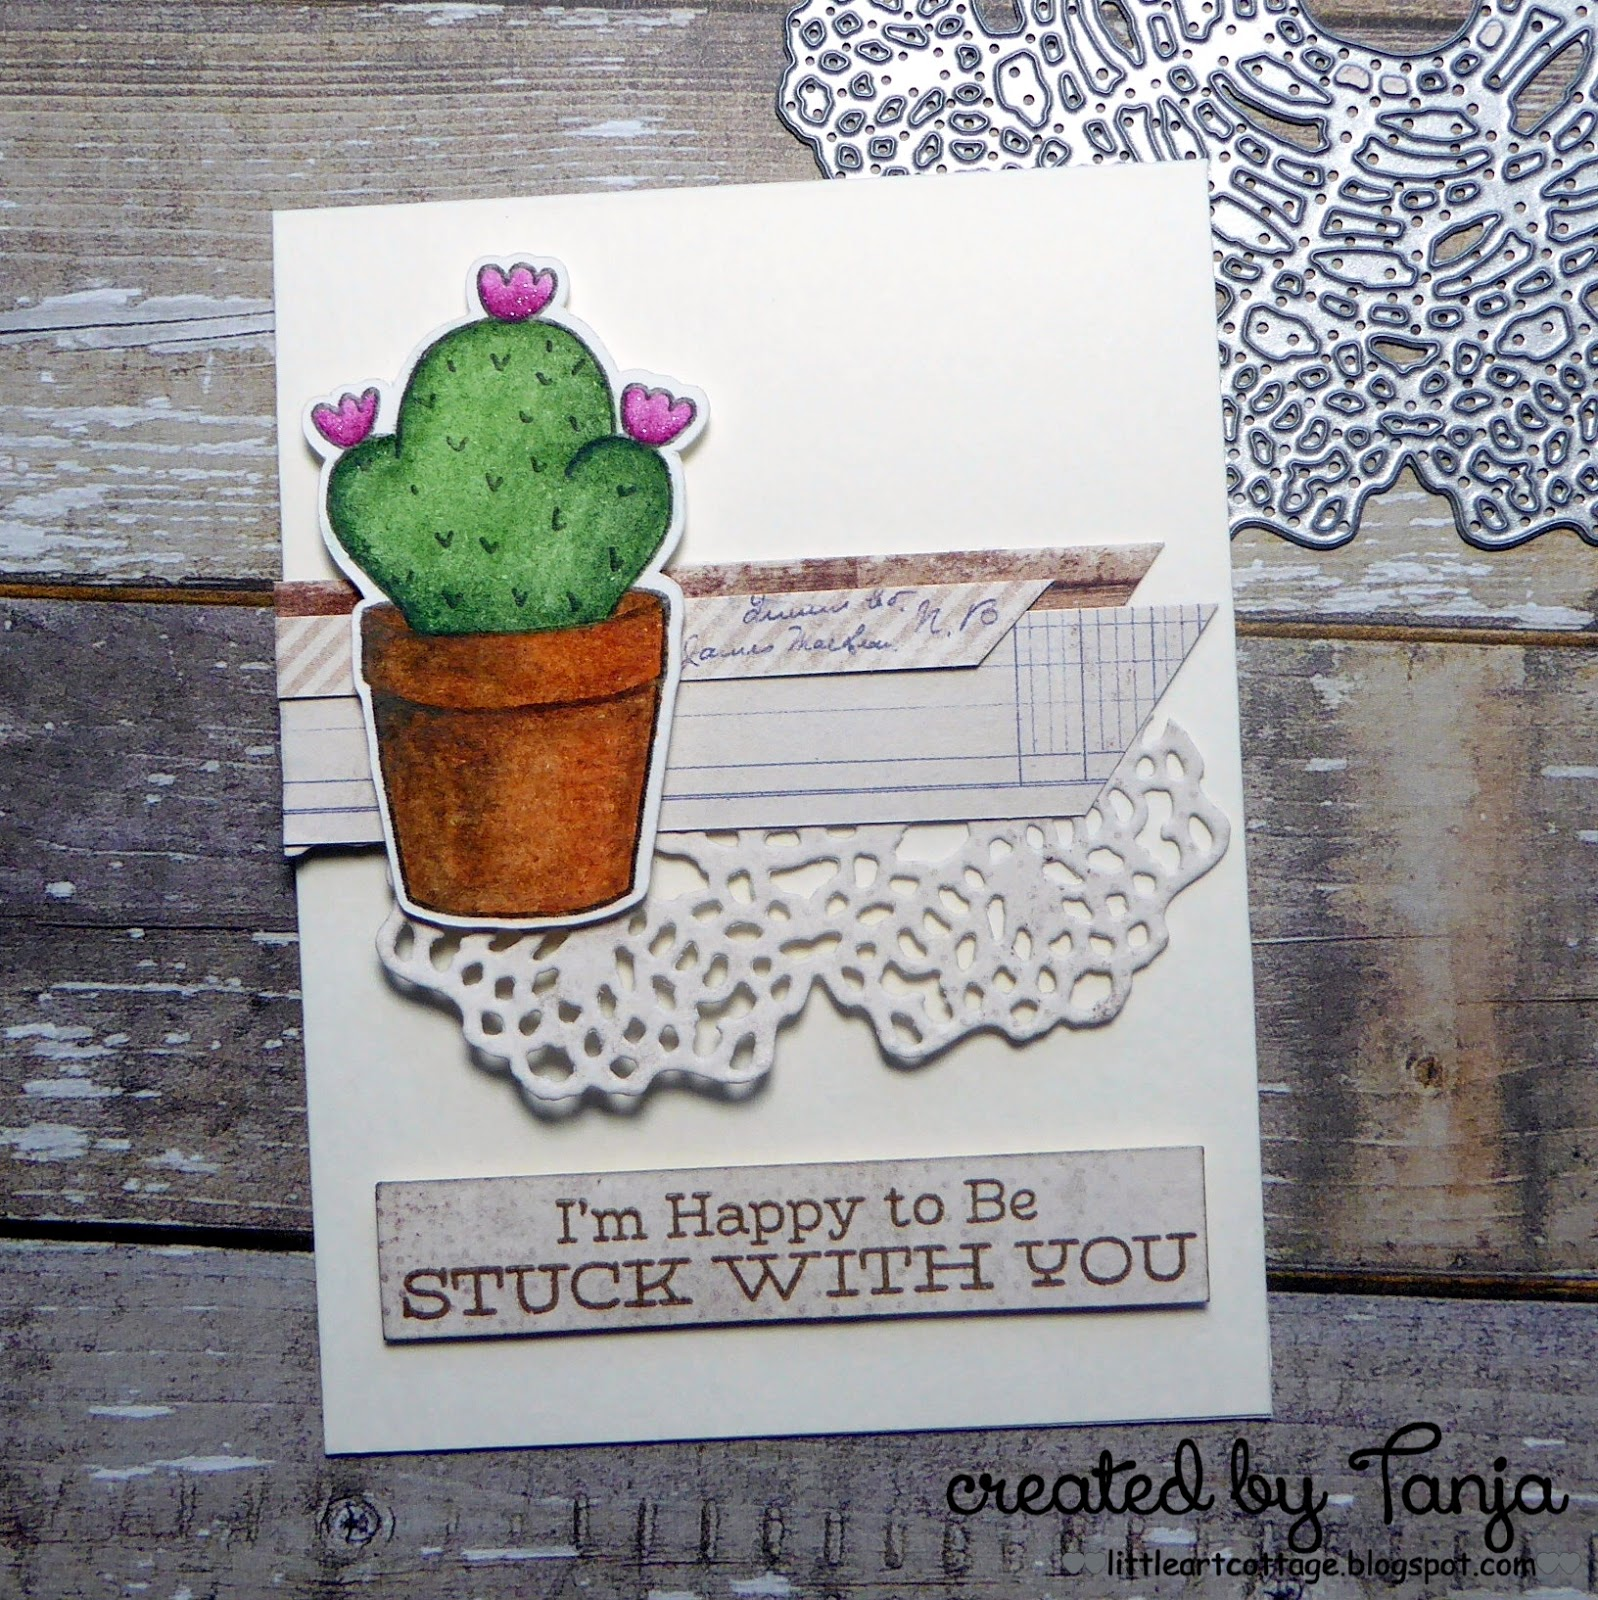 Color The Cactus From Gerda Steiner Designs Kitten In Flowerpot Image Which Is Available As Part Of Spring Digital Stamp